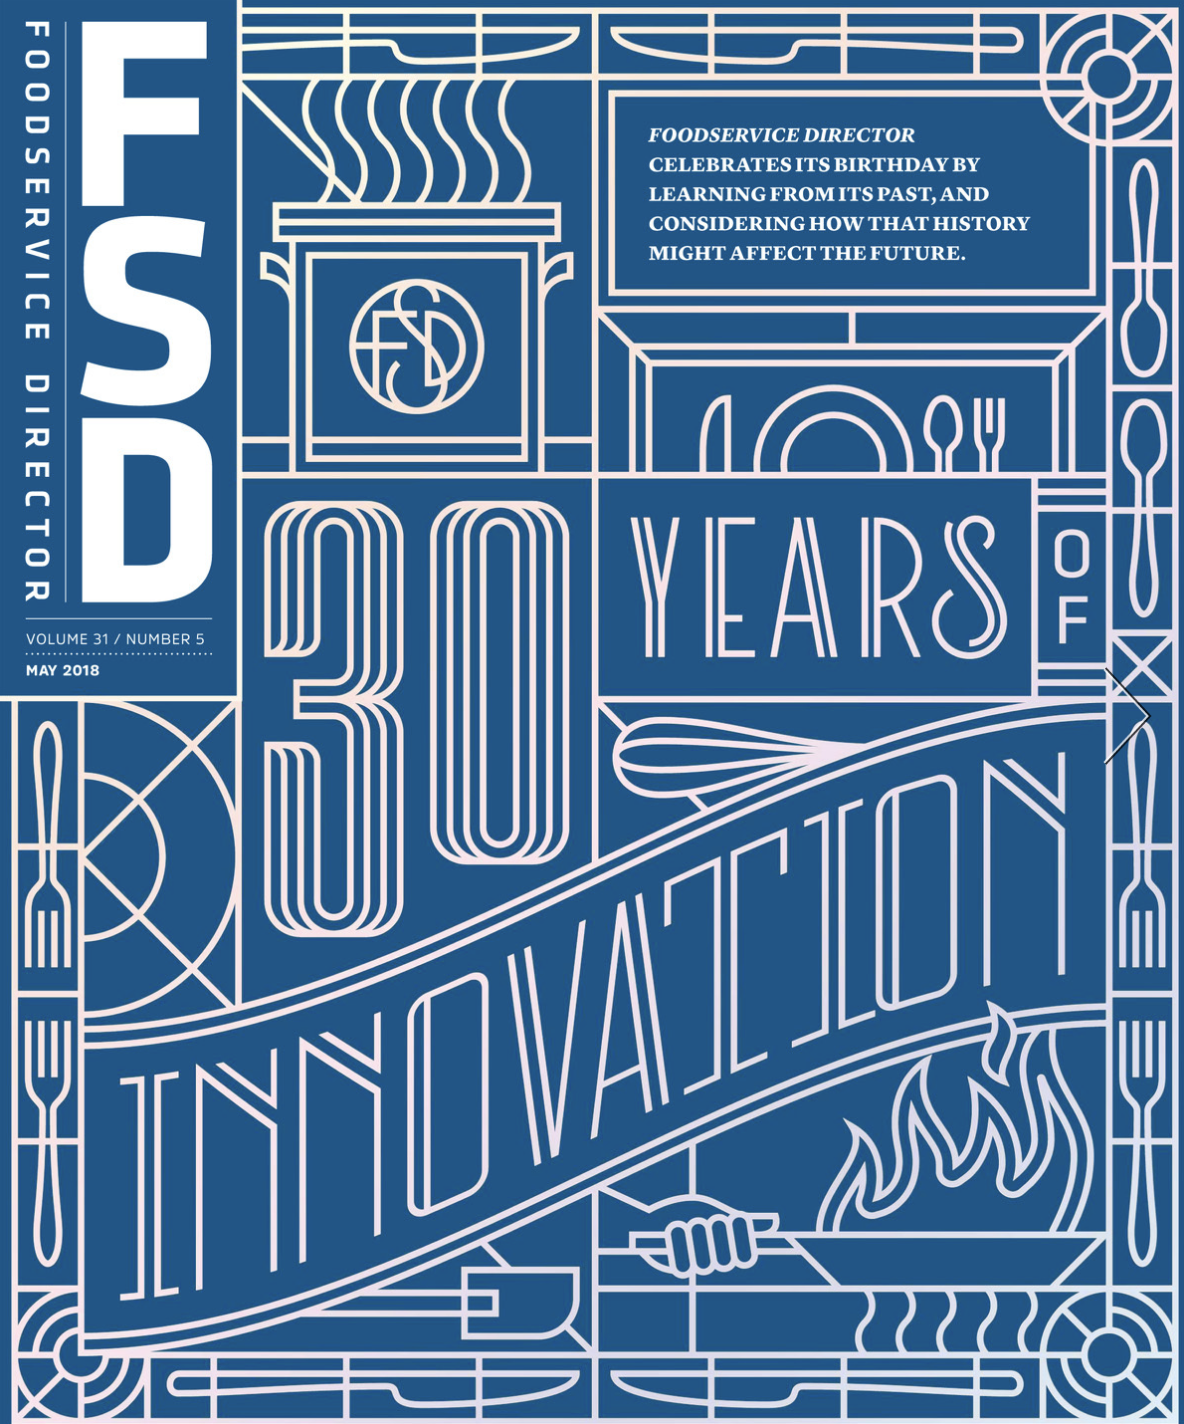 FoodService Director Magazine Foodservice Director | May 2018 Issue